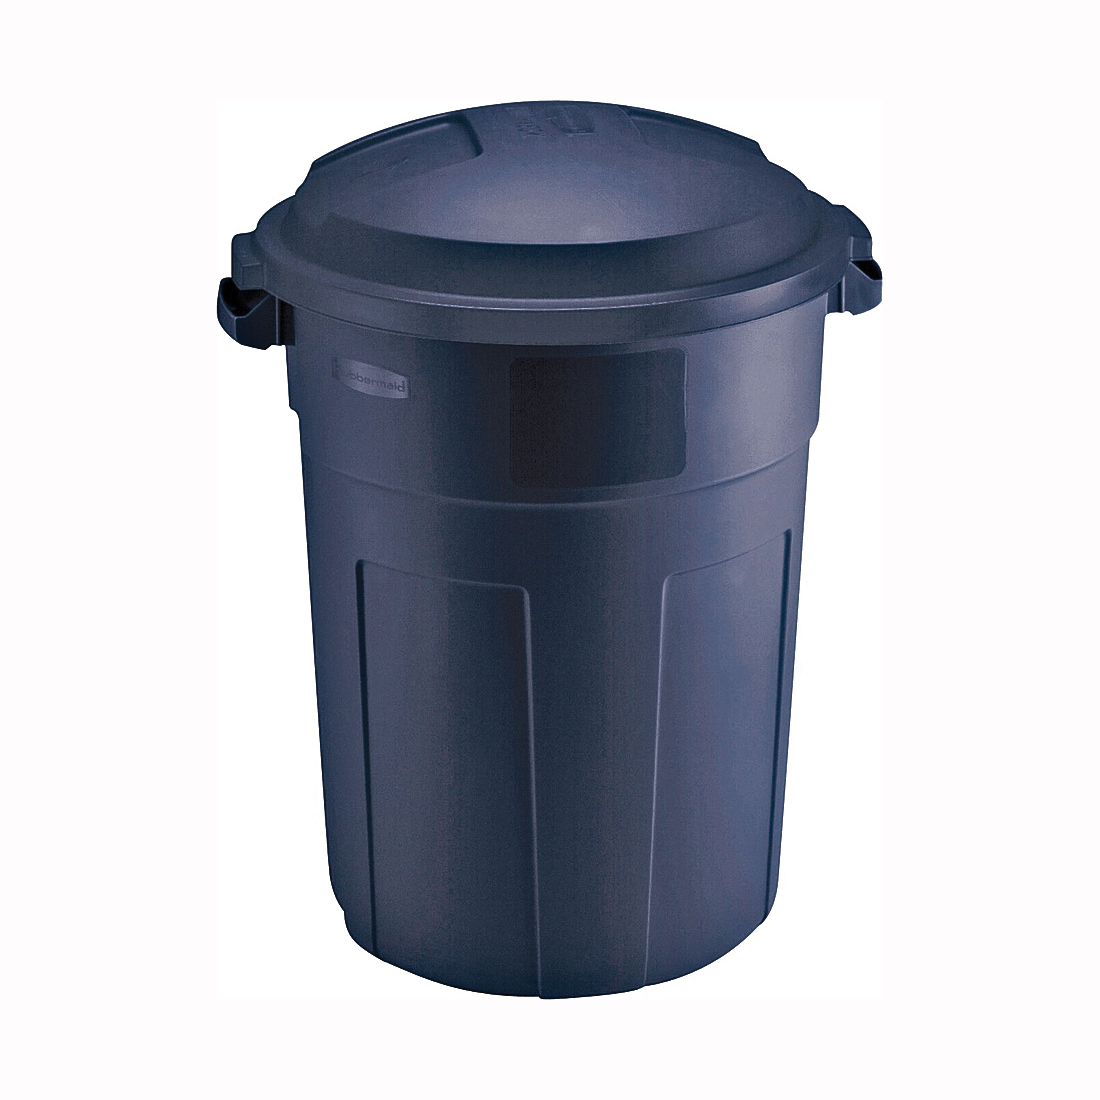 Picture of Rubbermaid FG2894FFBLAZB Refuse Container, 32 gal Capacity, Plastic, Blazer Blue, Snap-Fit Lid Closure